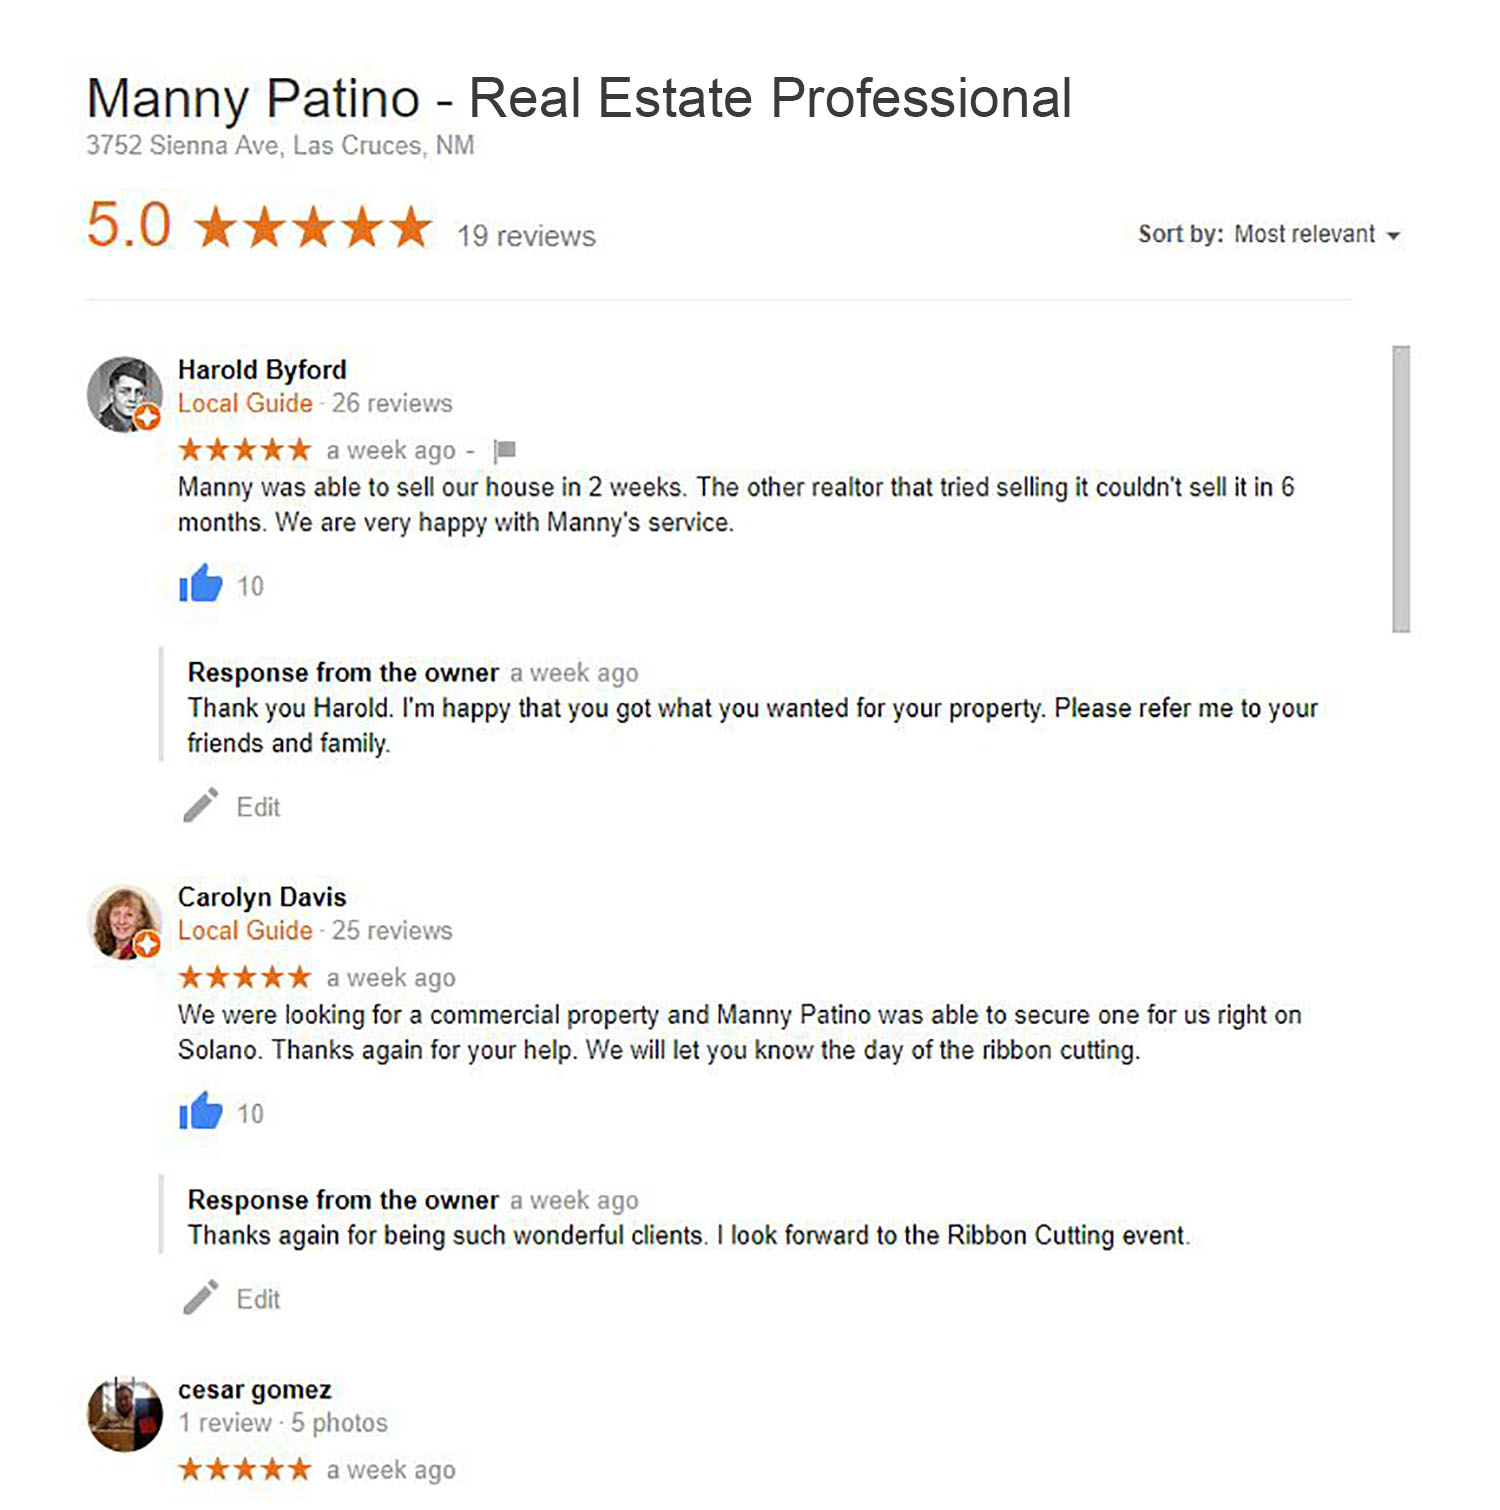 Manny Patino Real Estate